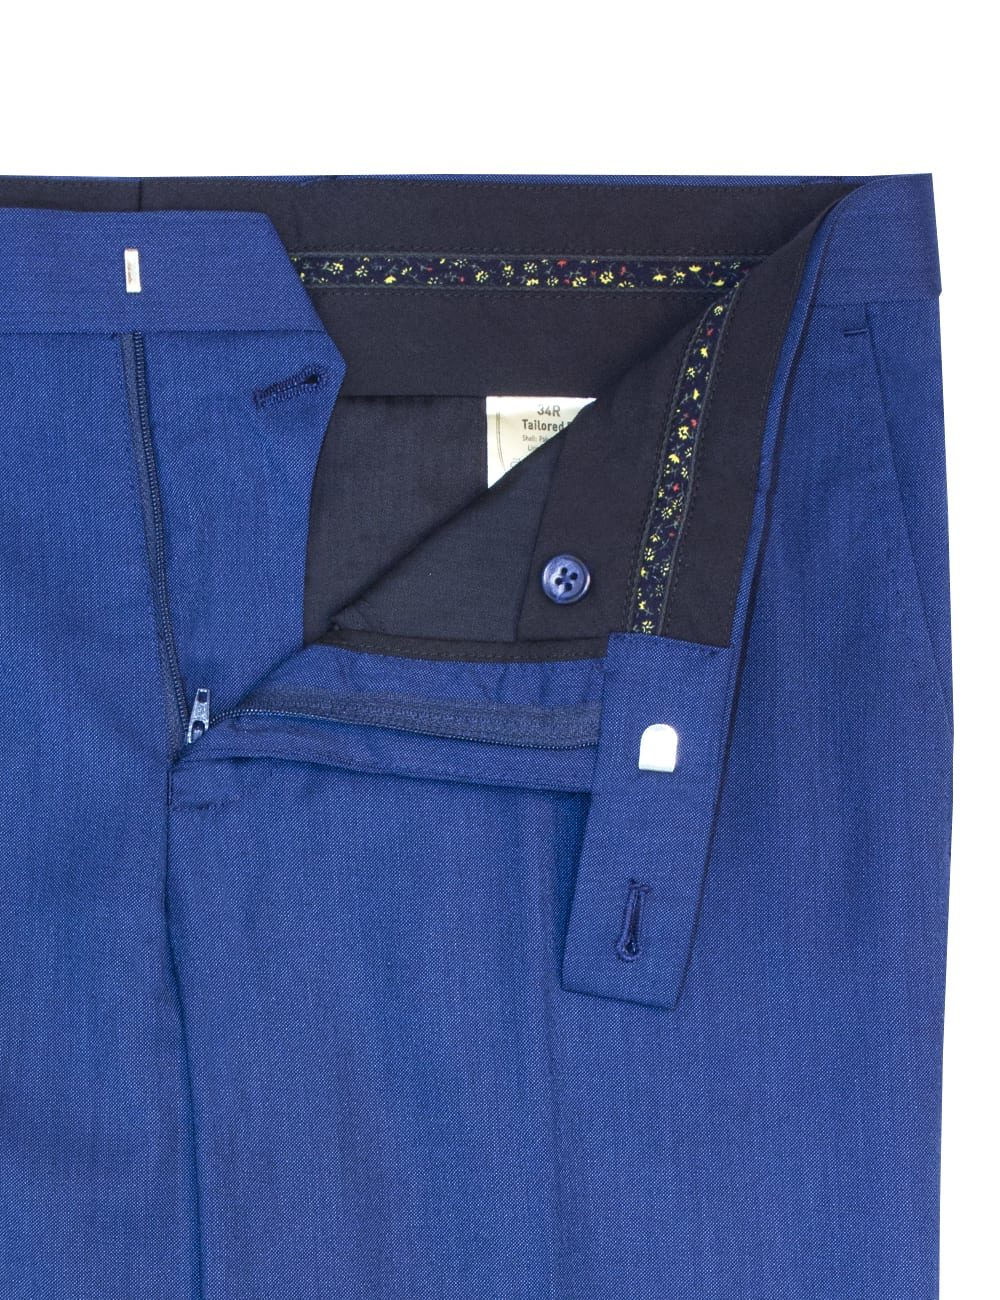 Tailored Fit Estate Blue Smart Pocket Flat Front Dress Pants DP1A4.3